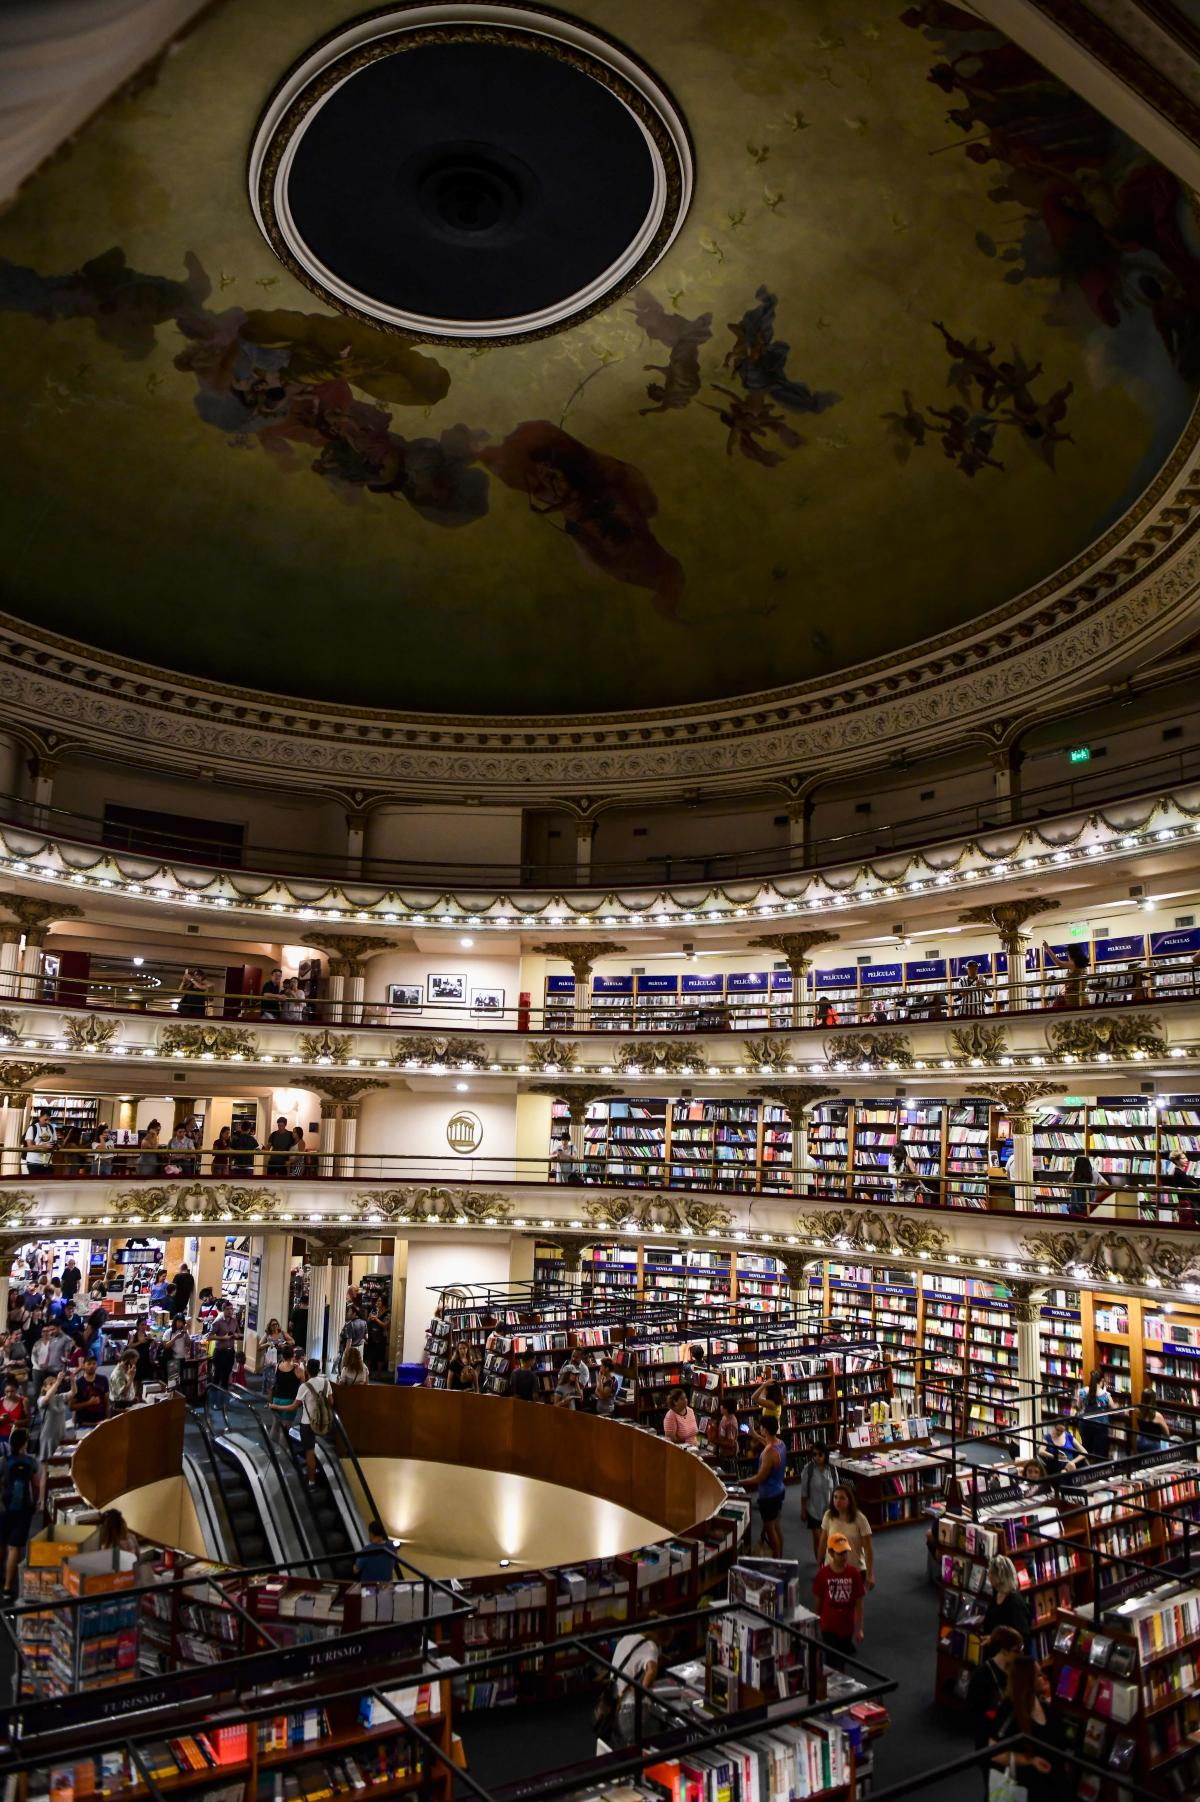 The theater that now houses El Ateneo Grand Splendid bookstore had a domed roof that opened.